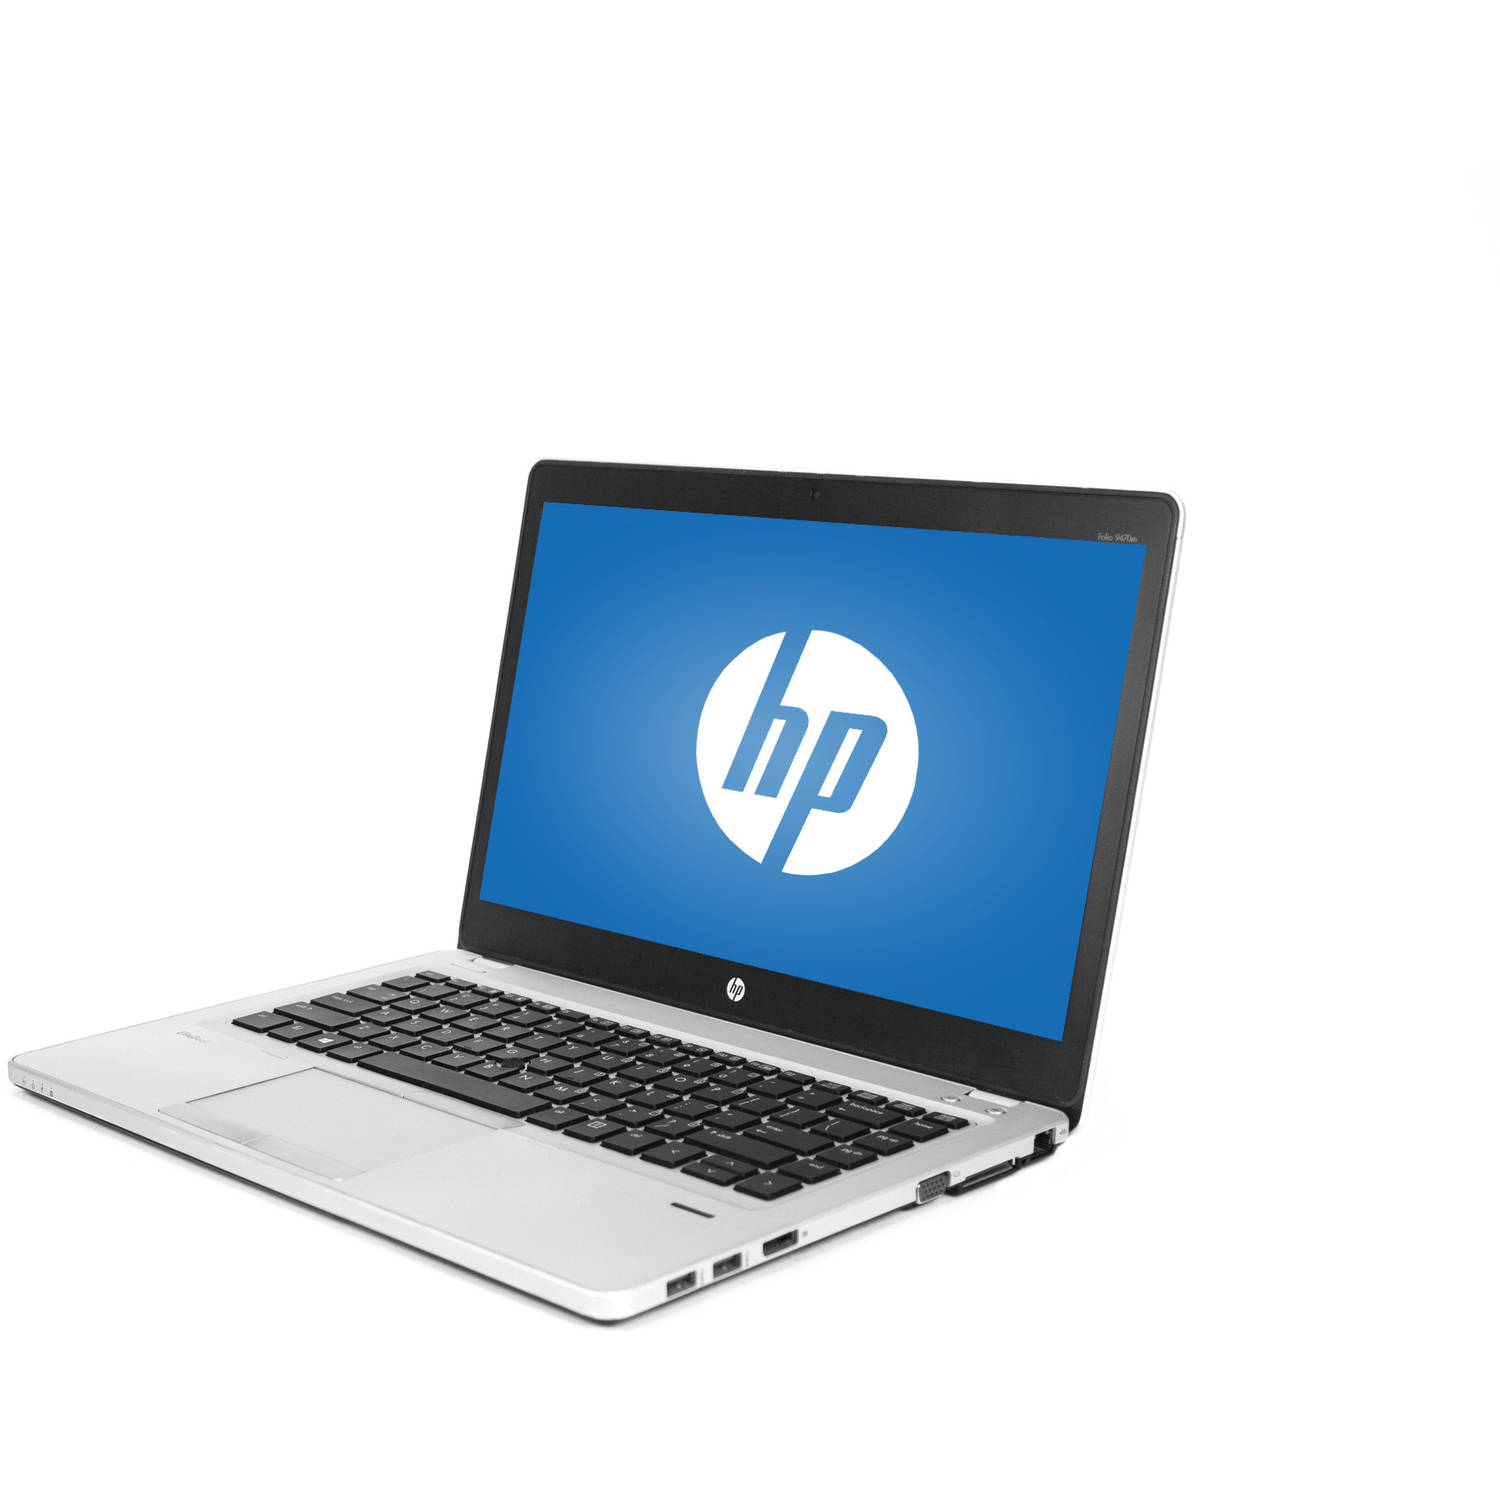 "Refurbished HP Ultrabook Silver 14"" EliteBook Folio 9470M WA5-0887 Laptop PC with"